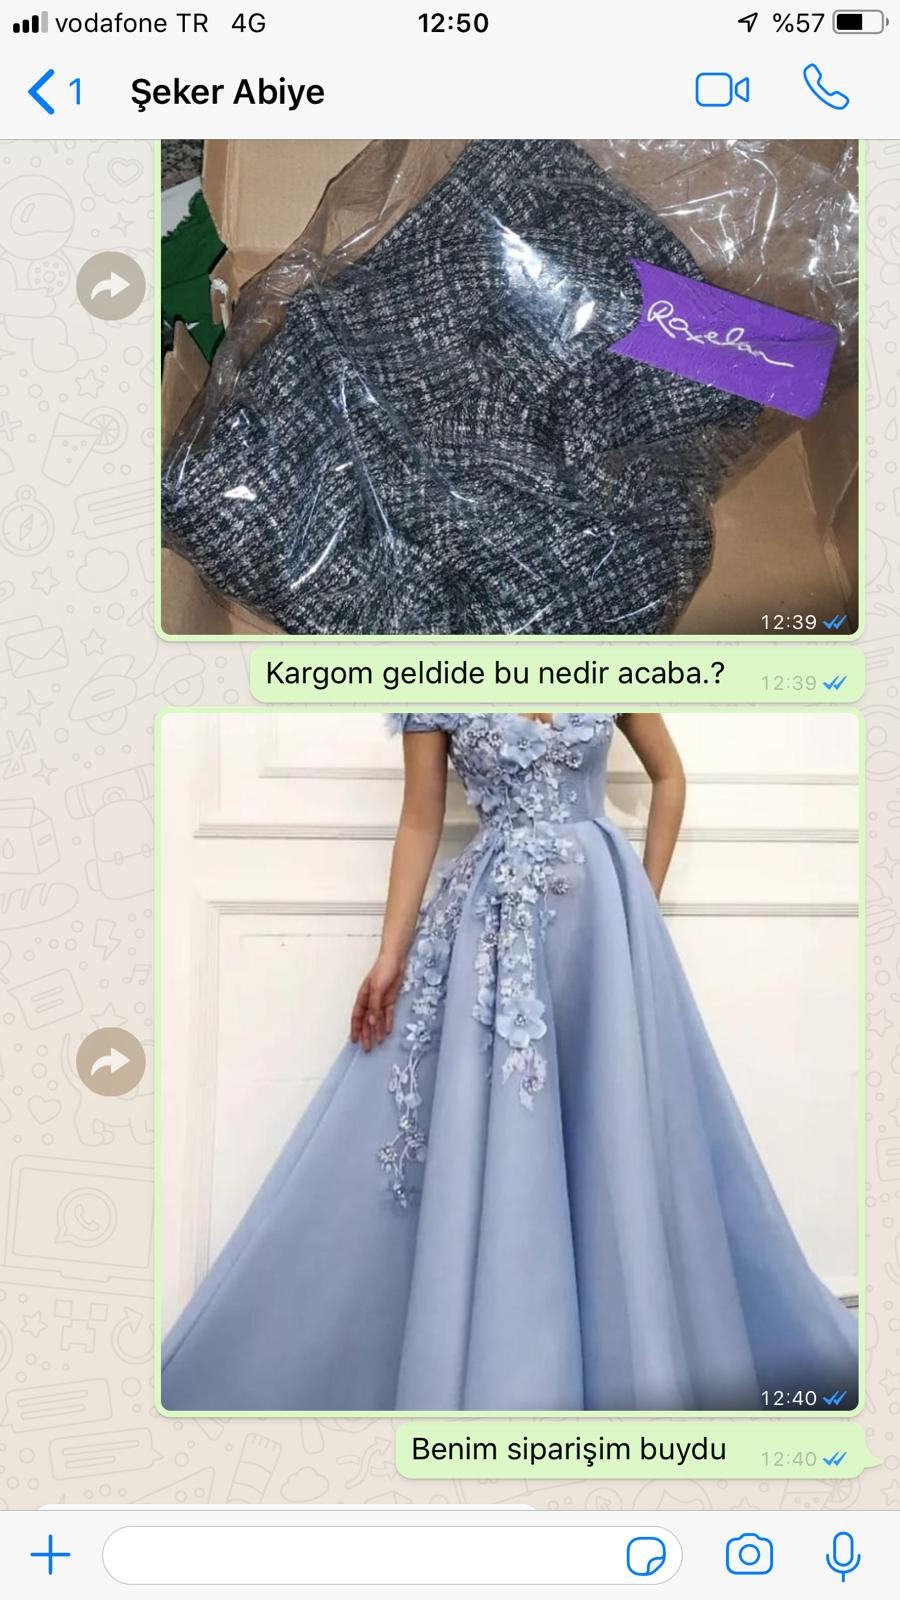 whatsapp ımage 2019-11-06 at 12.50.54